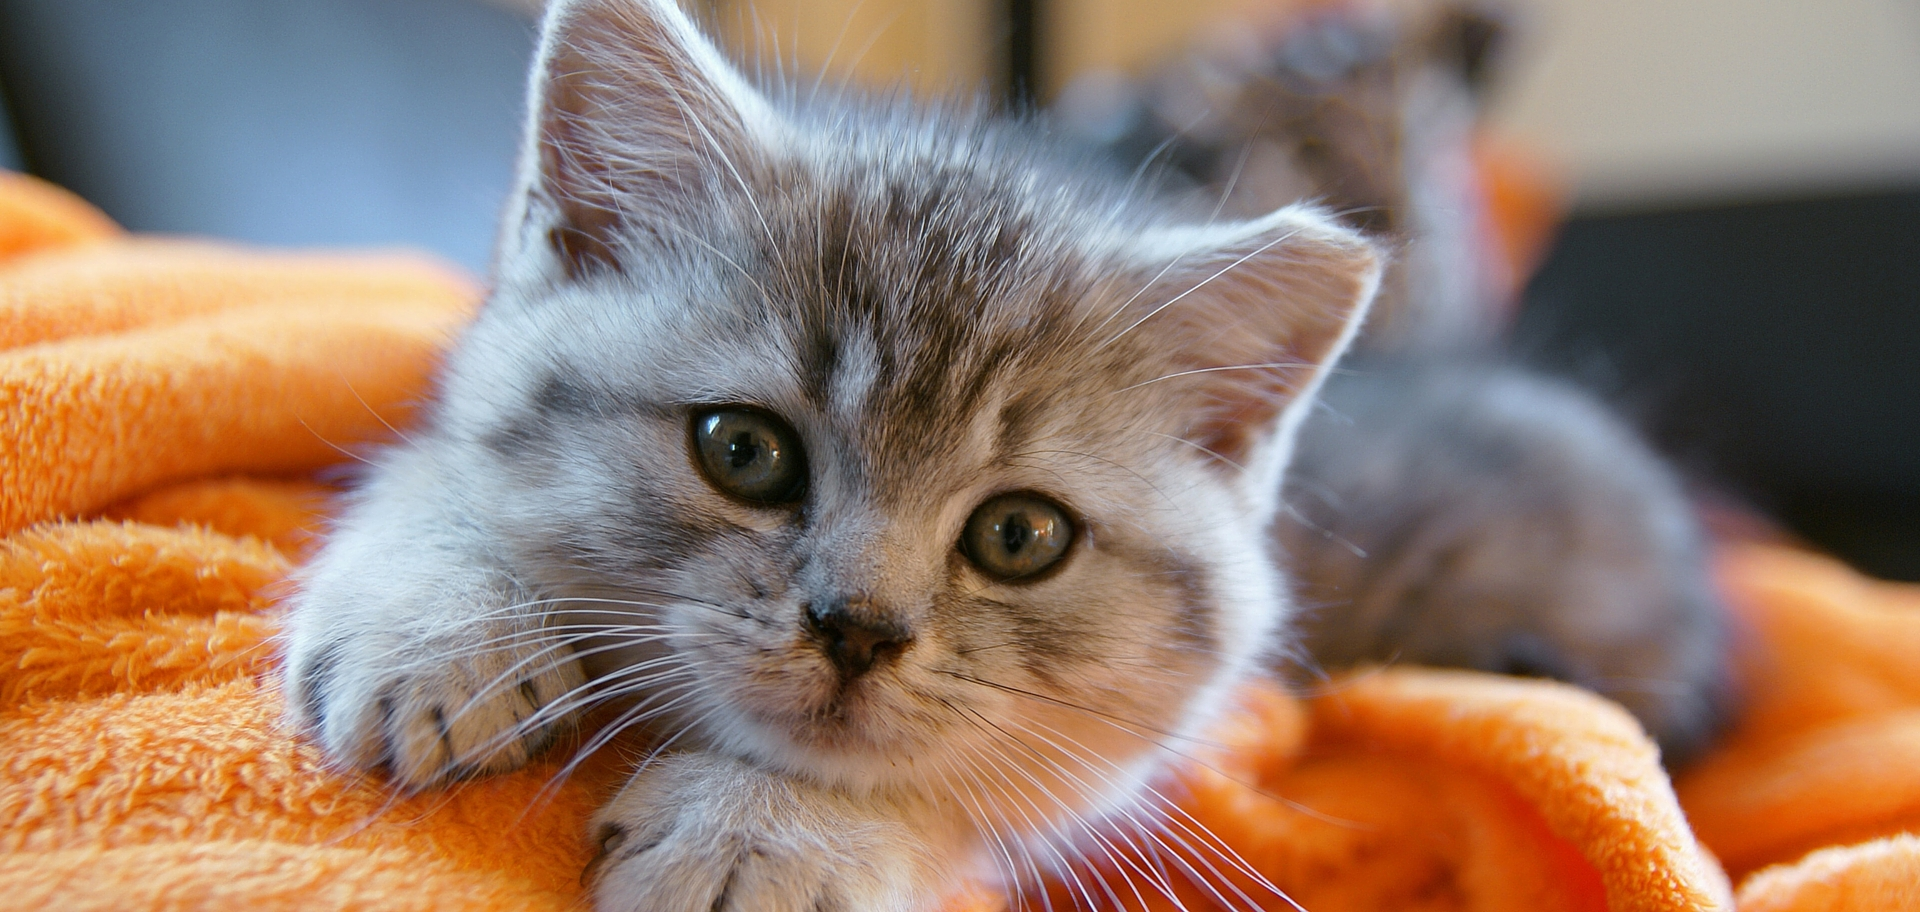 HERE'S WHY YOU SHOULD ADOPT A CAT THIS MONTH